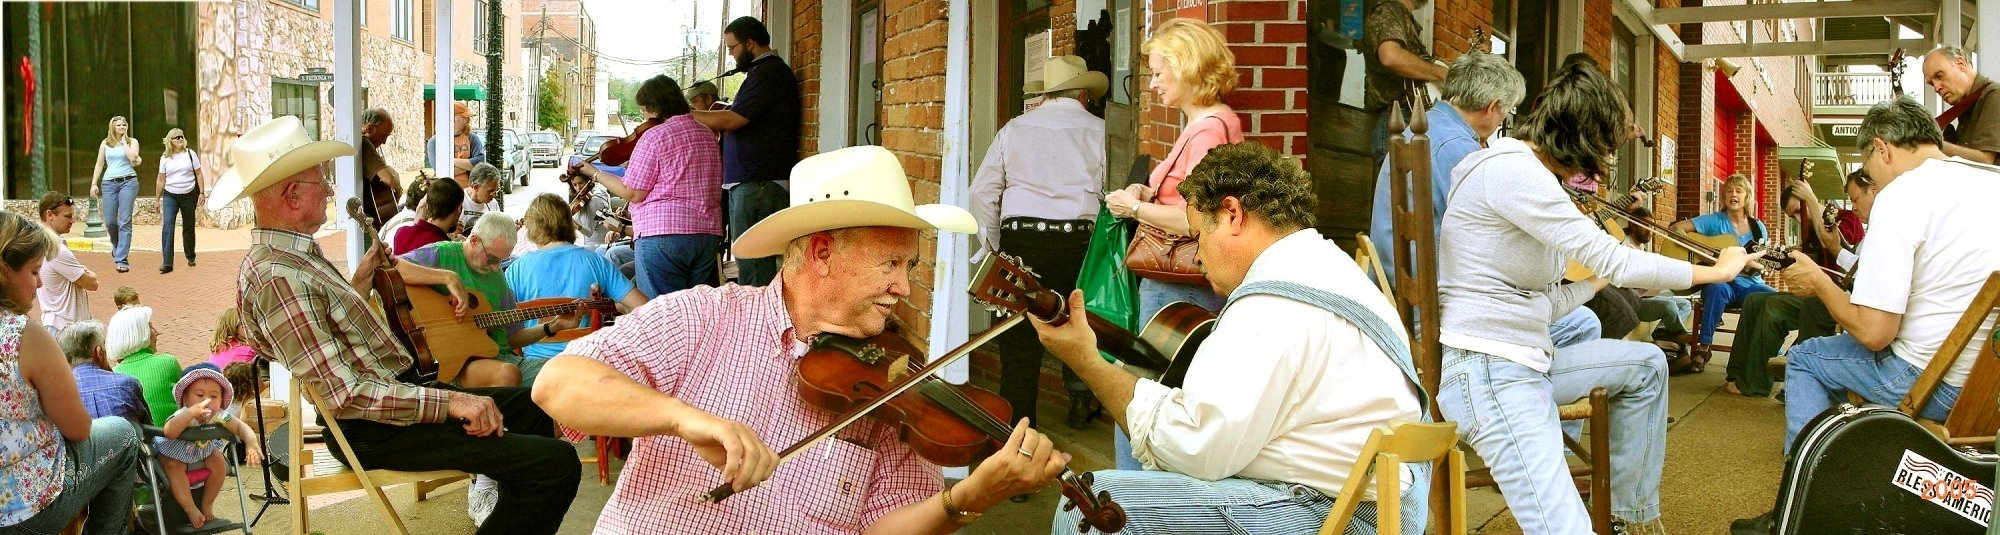 The Folk Songs of Texas in Historic Nacogdoches